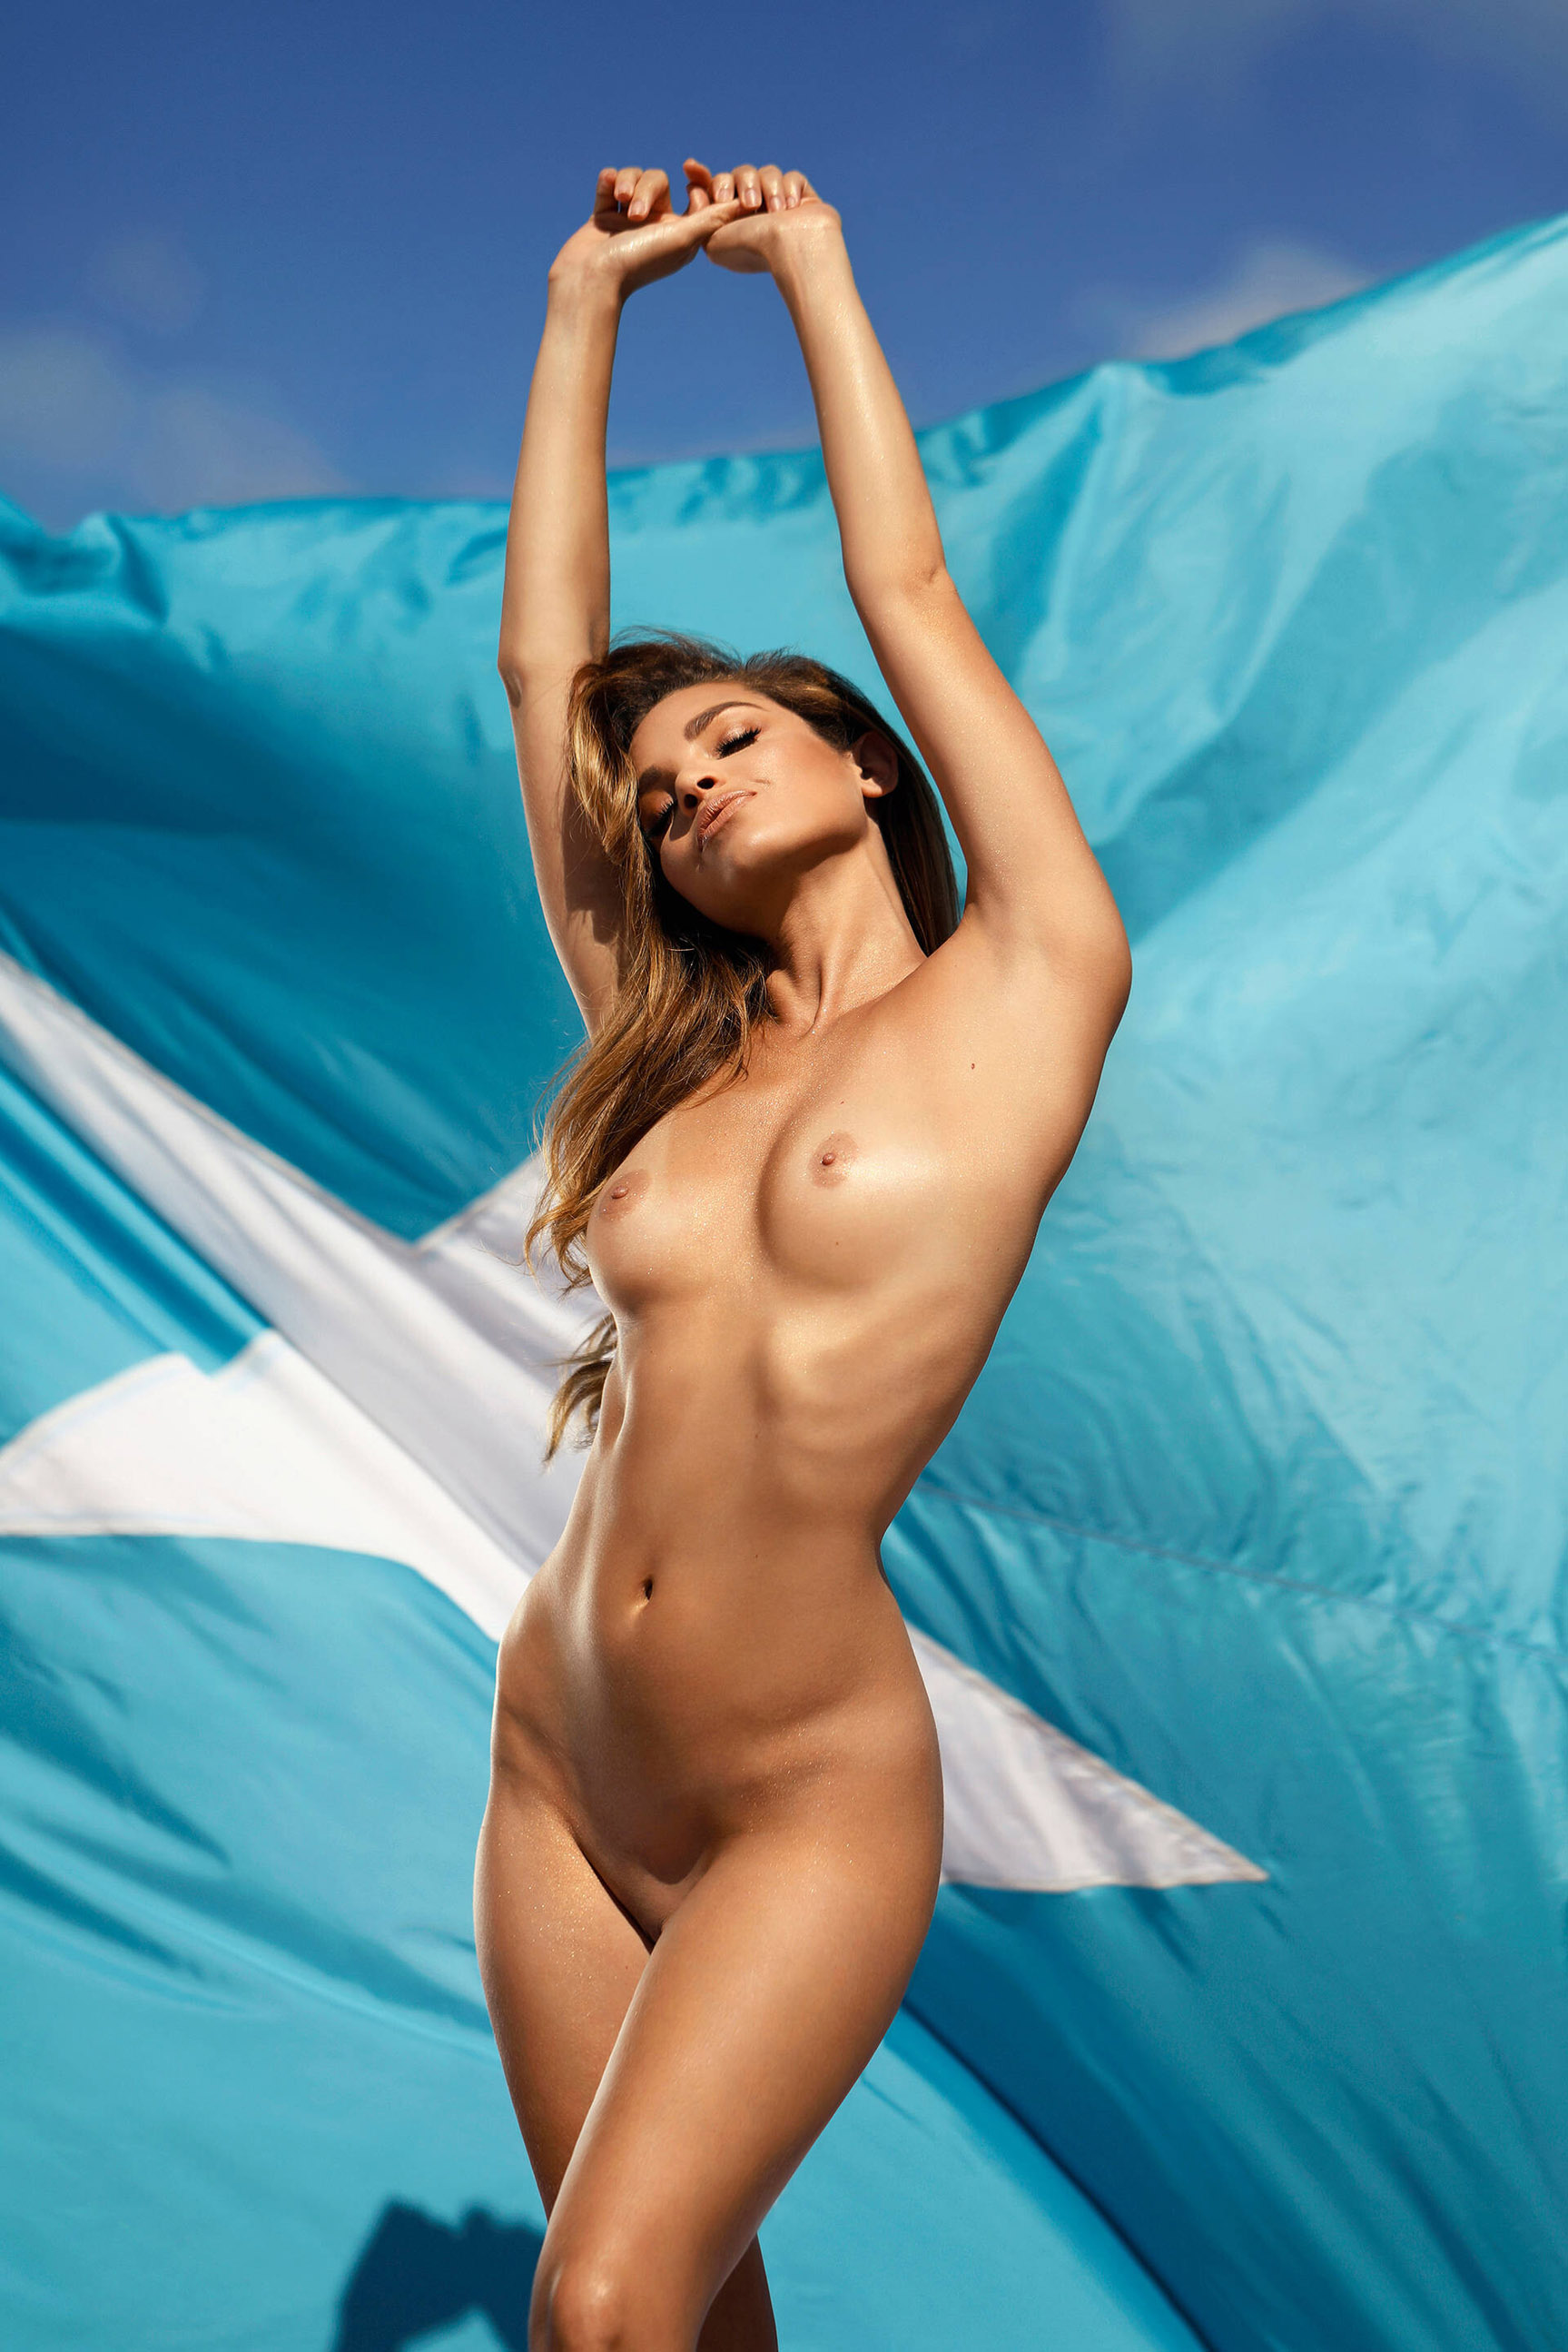 Puerto Rico / Yoli Lara by Ana Dias / Playboy Portugal may 2019